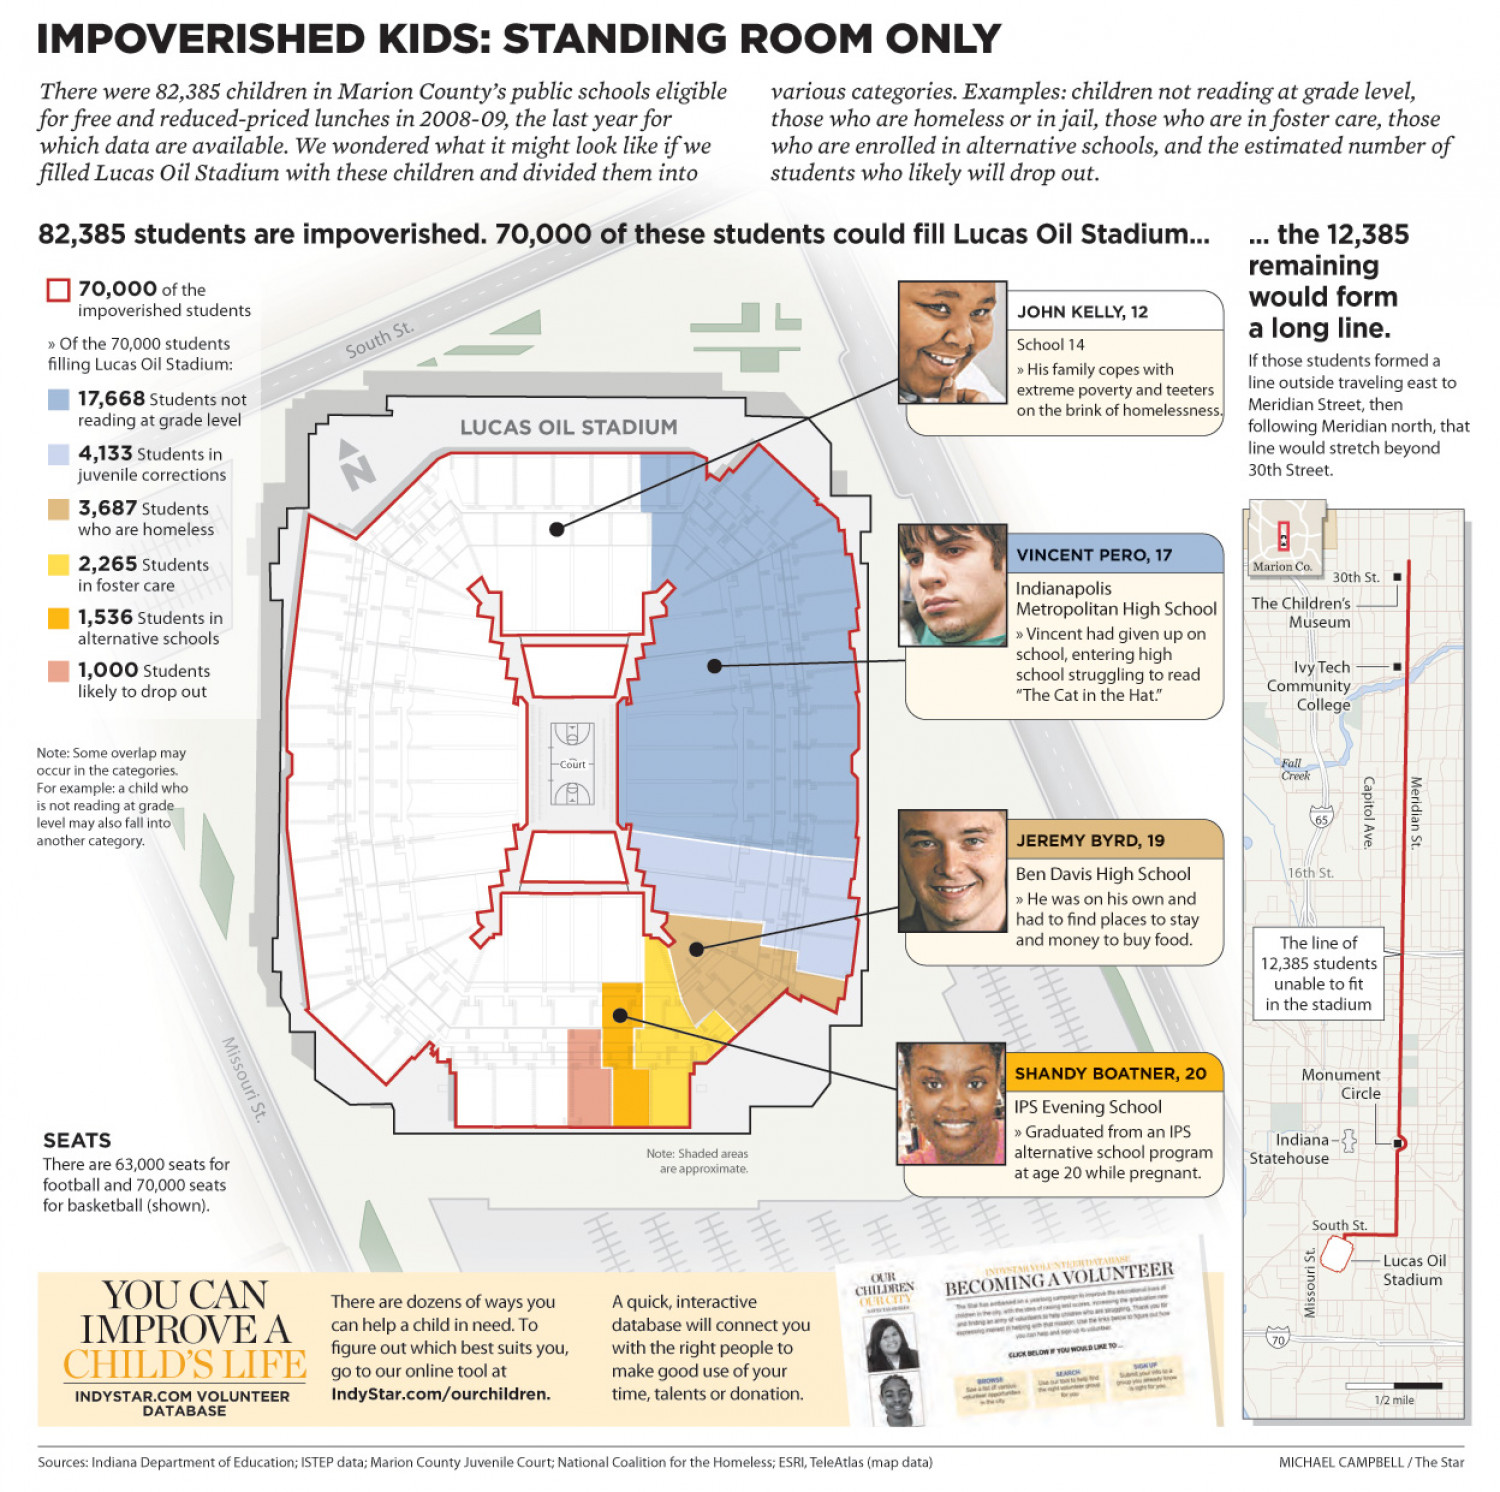 Impoverished Kids: Standing Room Only Infographic